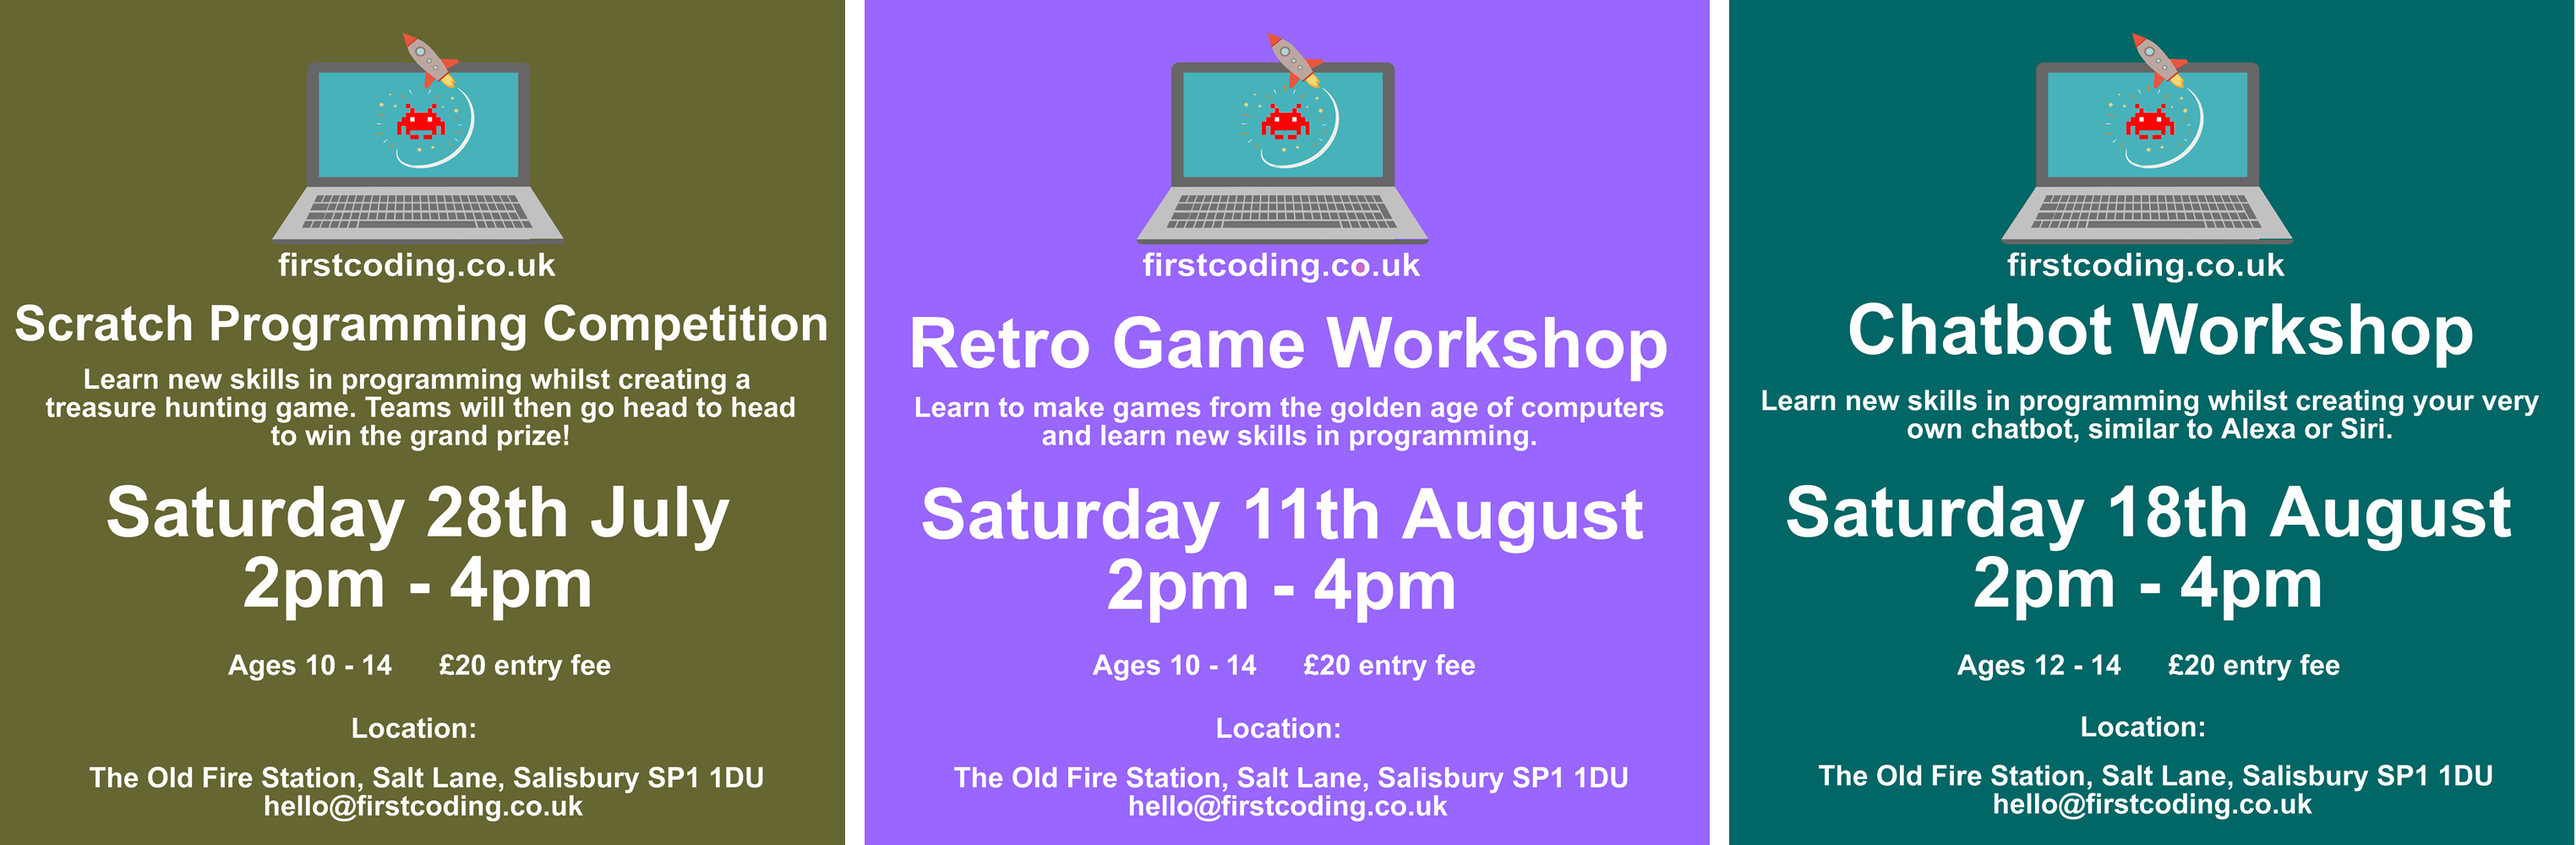 First Coding Summer Holiday Workshops in Salisbury